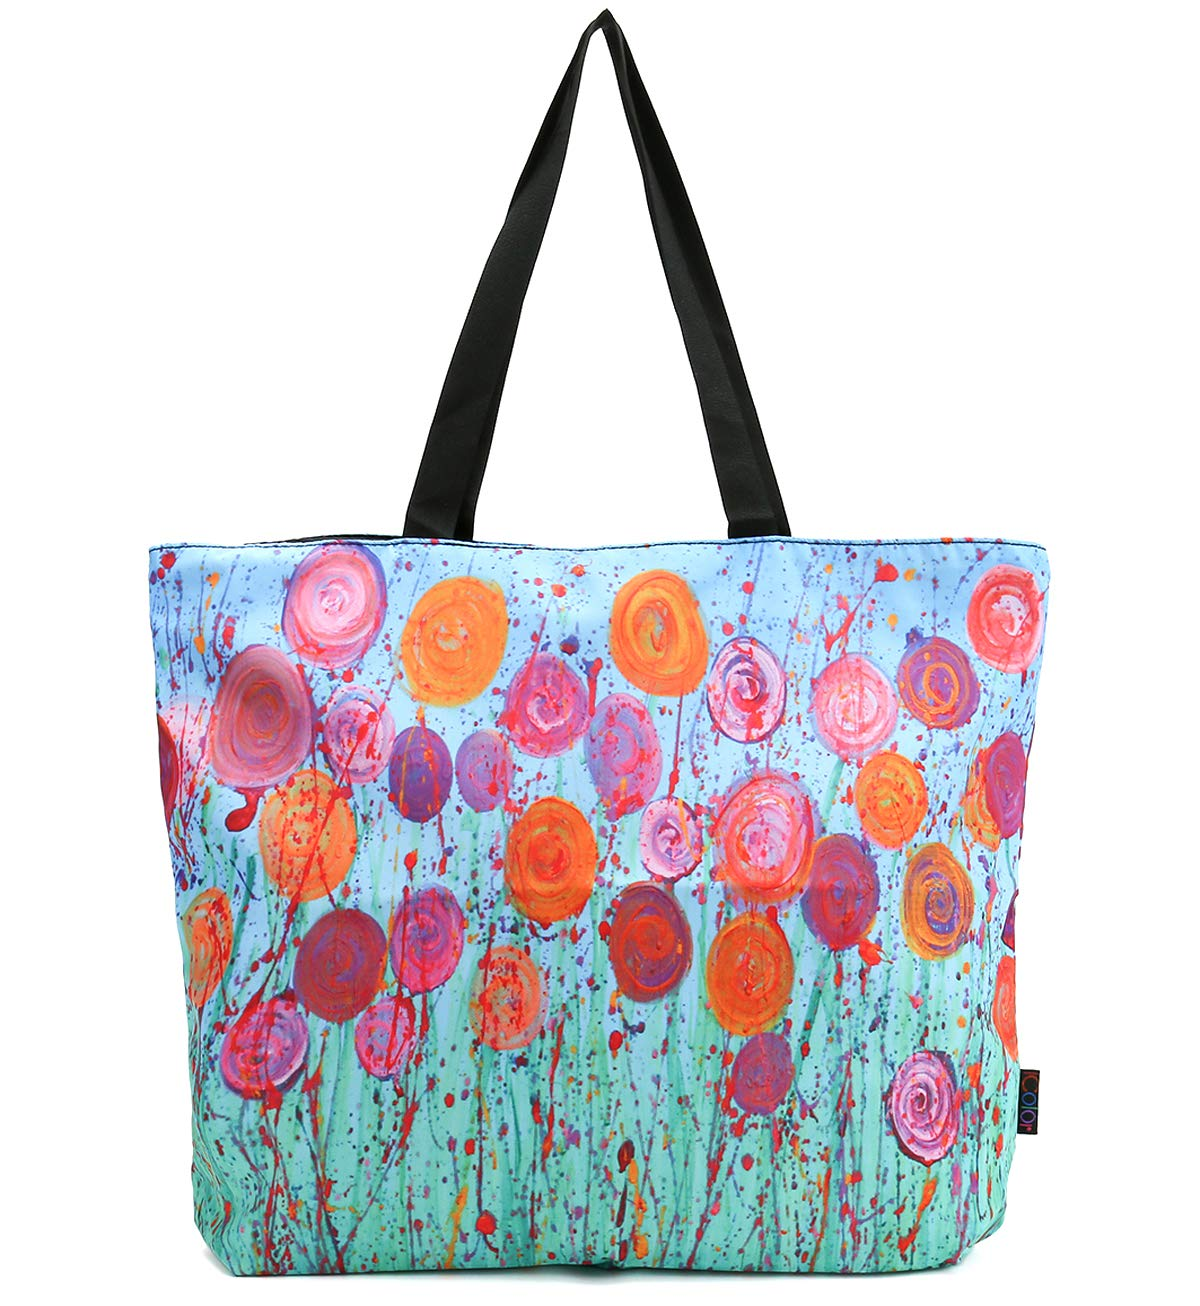 ICOLOR Blue Smiling Face Gym Bag Tote Bags Shoulder Bag Beach Bag with Zipper for Men Women,Reusable Gym Picnic Travel Beach Shopping Work Daily Use Shoppers Tote GymBag-01